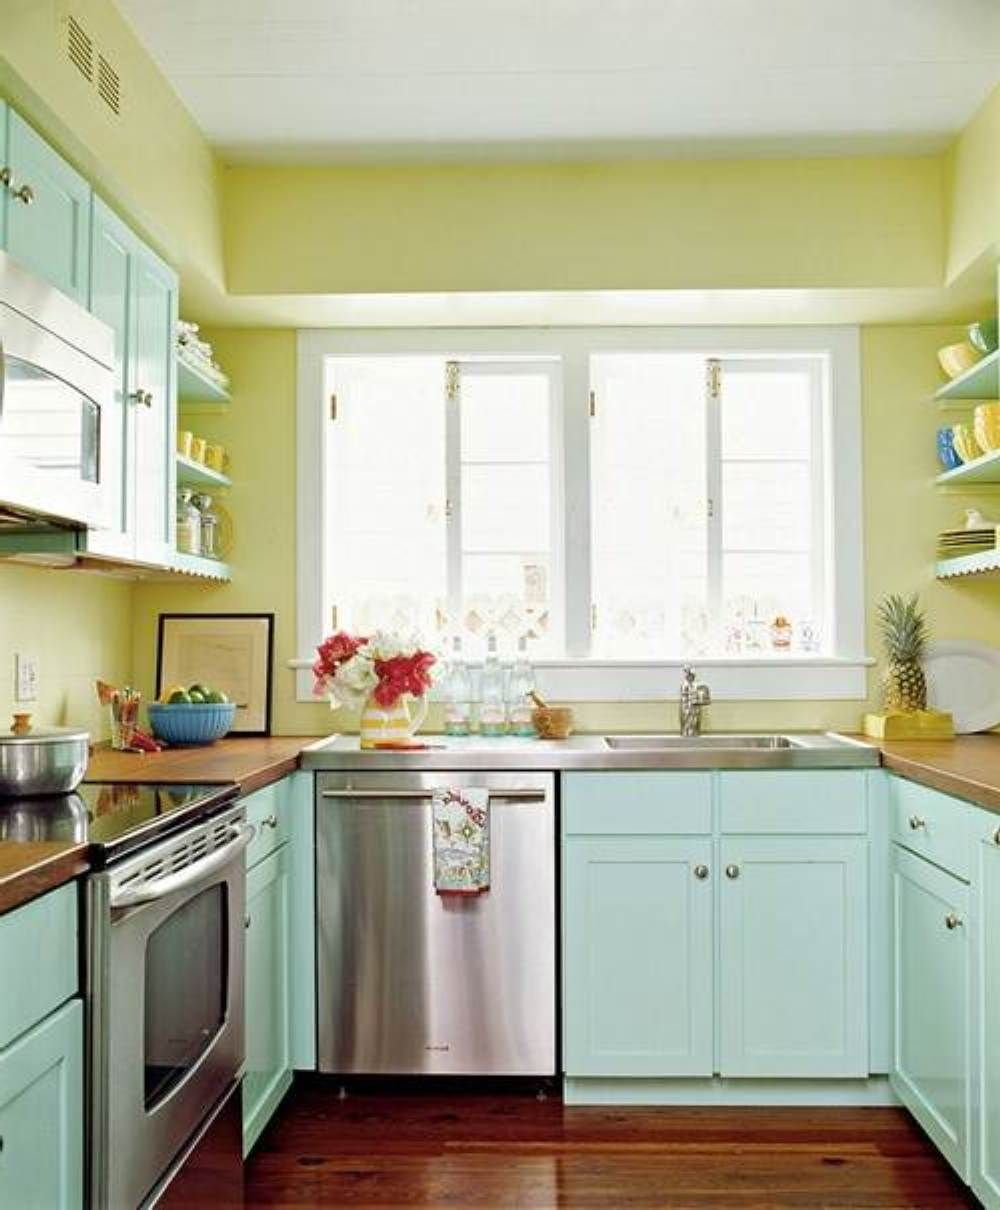 kitchen design wall colors. Small-kitchen-as-kitchen-remodel-with-impressive-Appearance-for-appealing- Kitchen-Design-and-Decorating-Ideas-6 Kitchen Design Wall Colors T